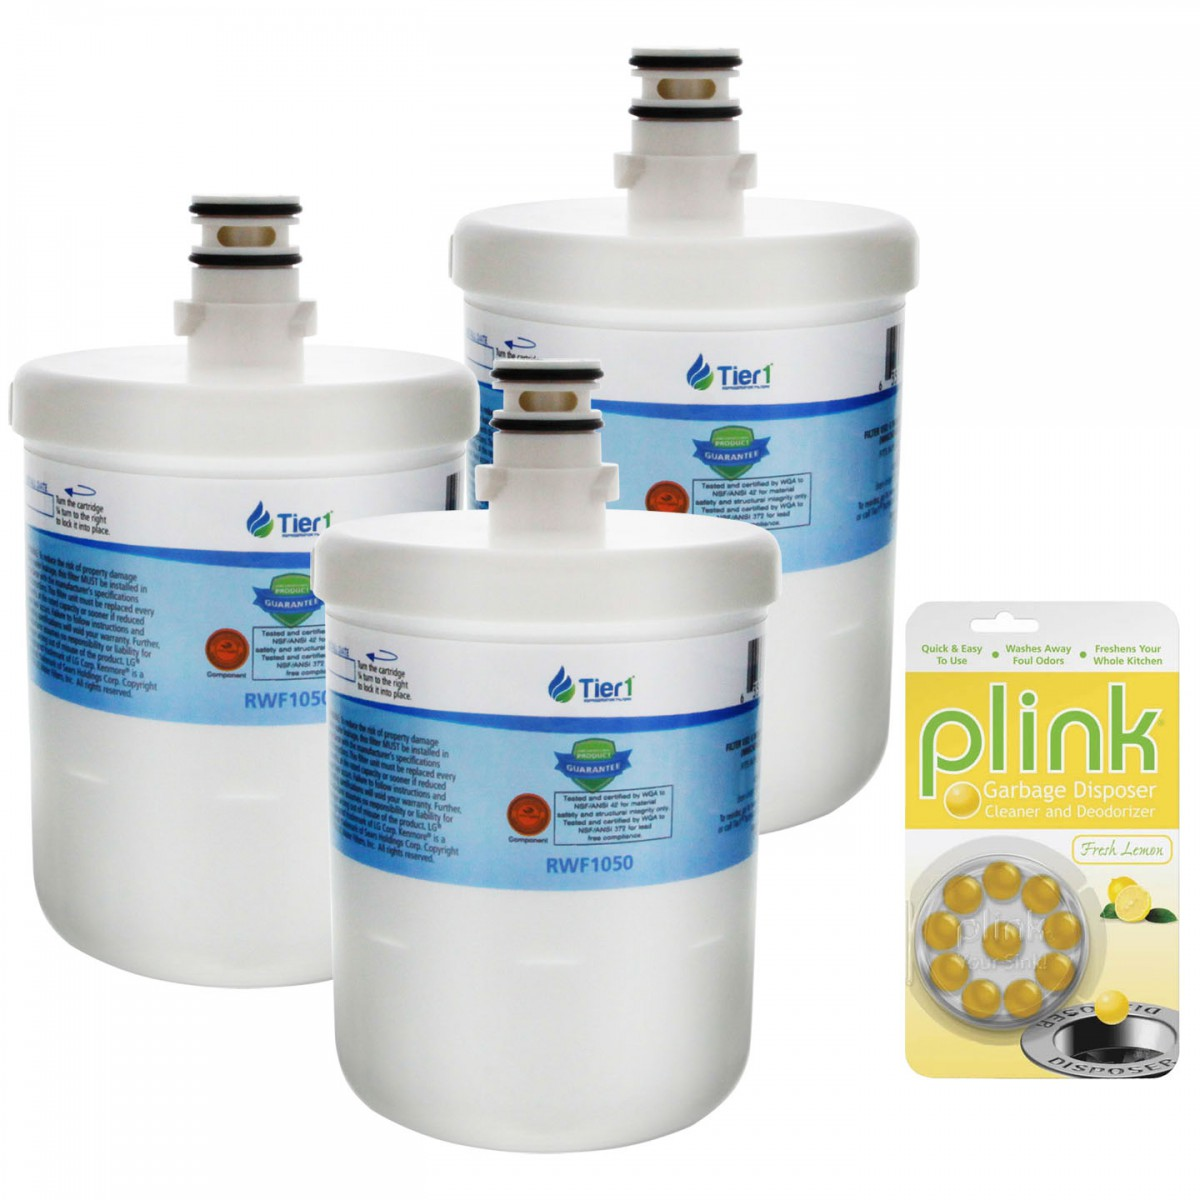 5231JA2002A / LT500P LG Comparable Refrigerator Water Filter Replacement  and Plink Garbage Disposal Cleaner (3 Pack) by Tier1